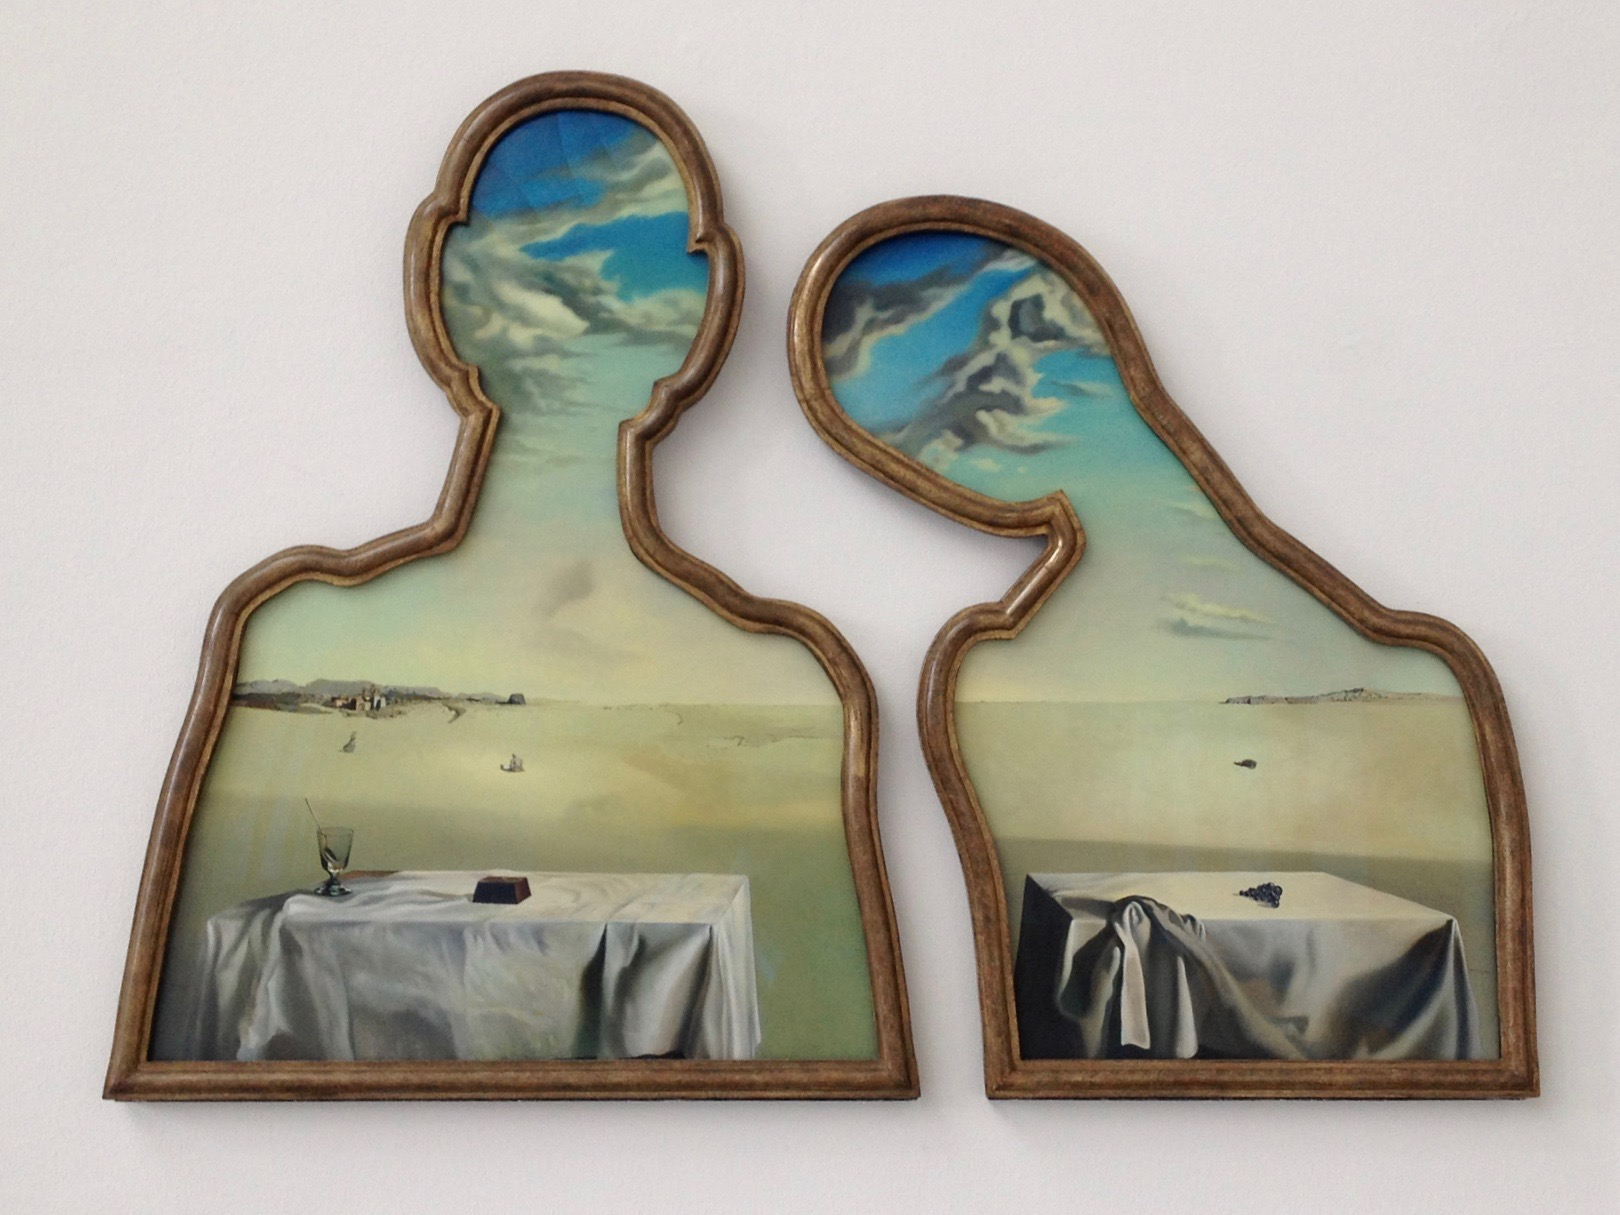 A couple with their heads full of clouds, Salvador Dalí